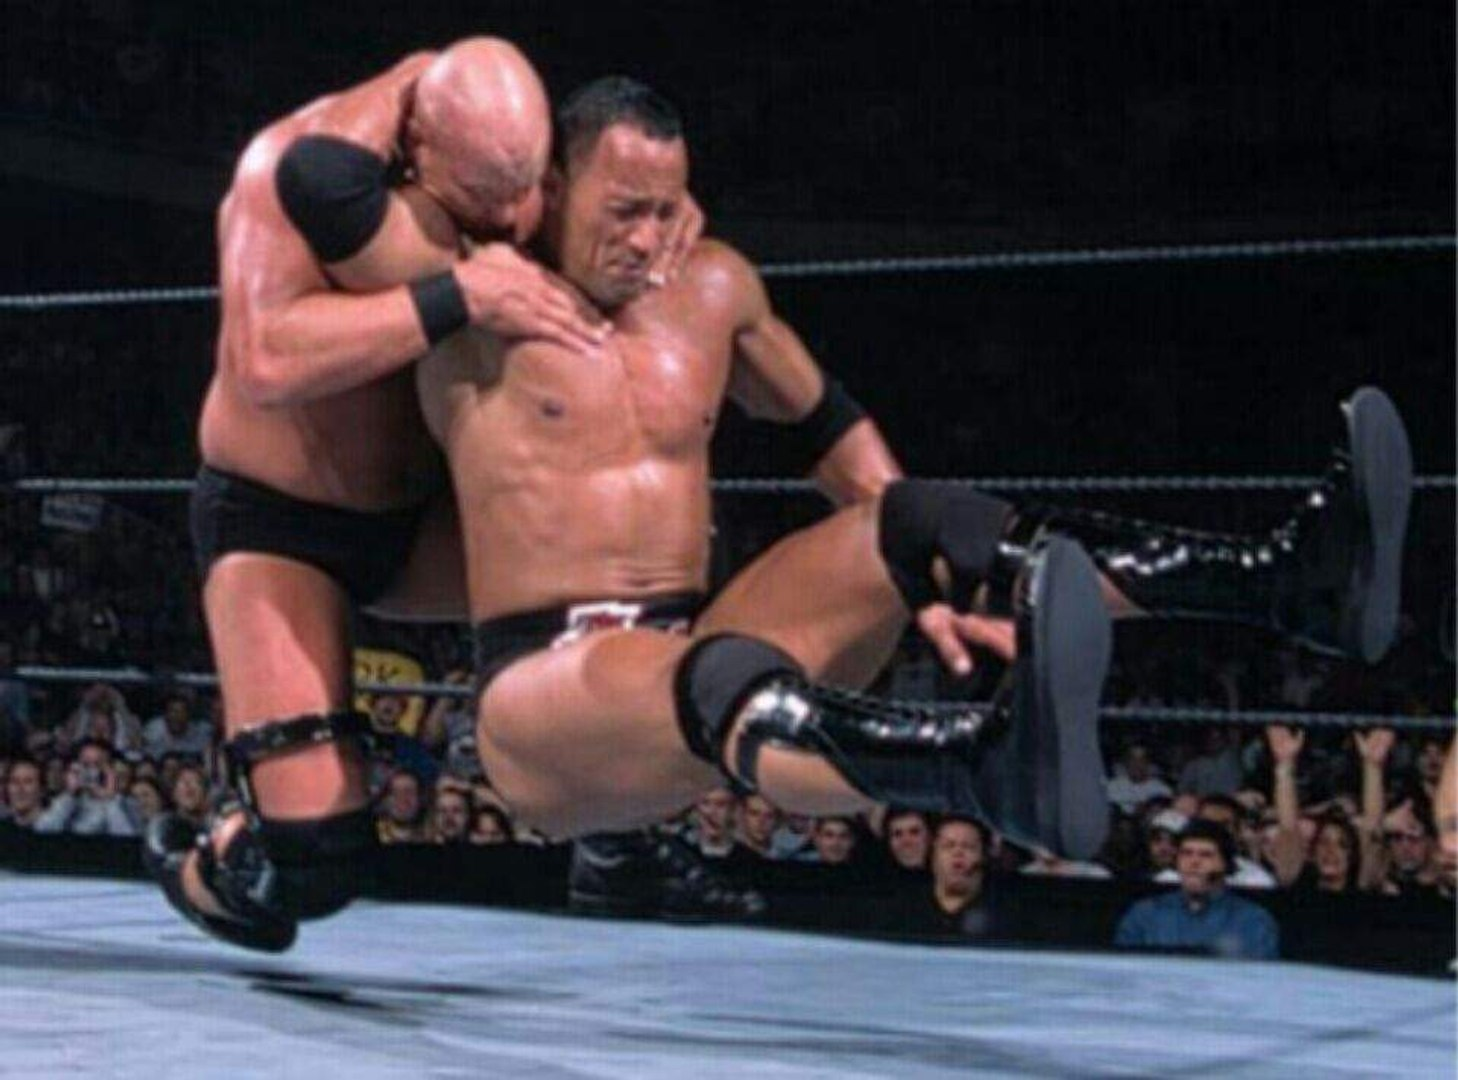 Wwe Wrestlemania 17 The Rock Vs Stone Cold Steve Austin Full Match April 1 2001 Video Dailymotion